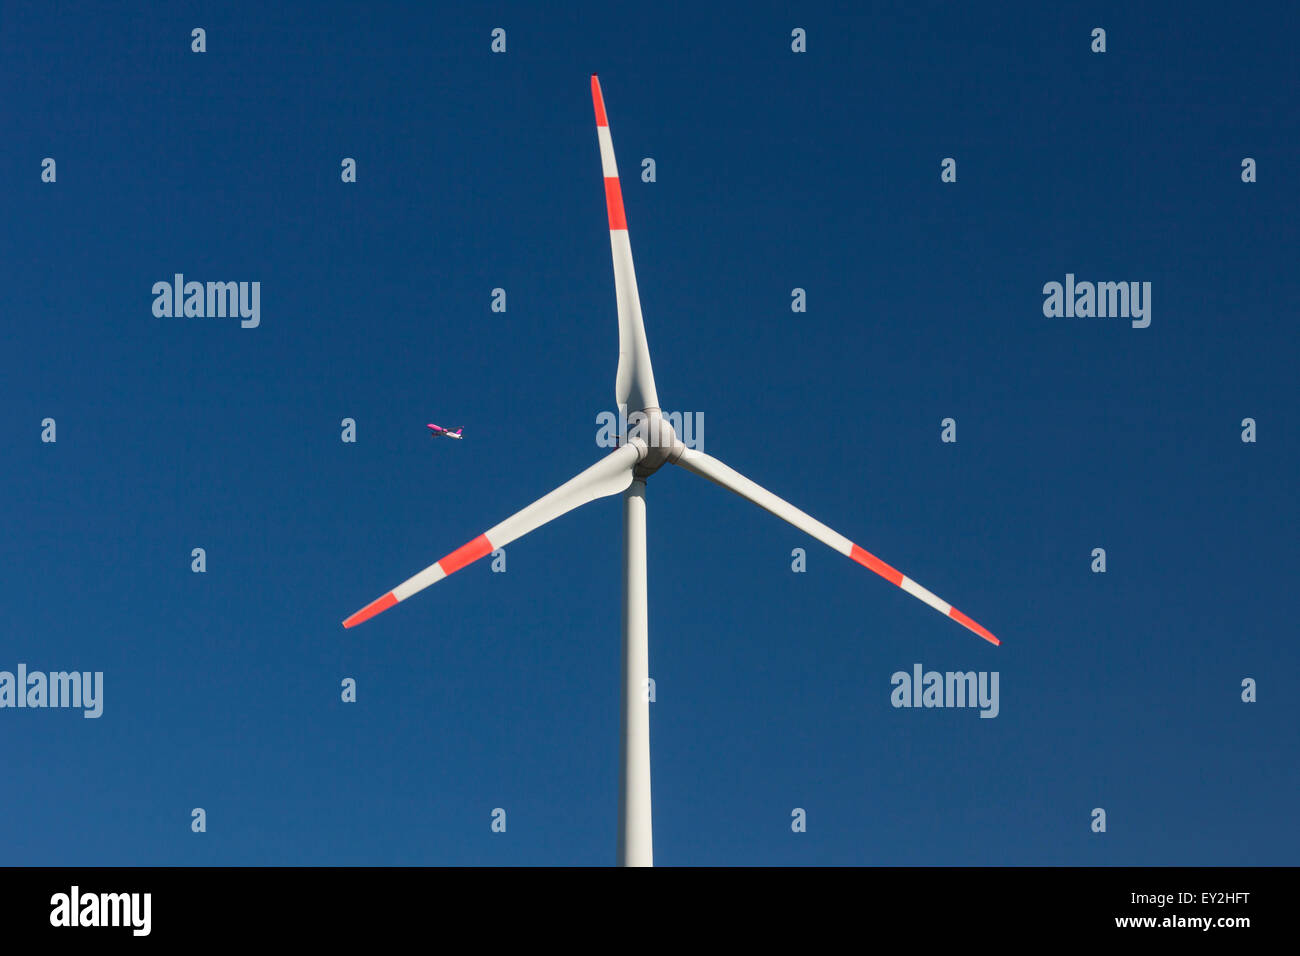 Jet airliner seen through rotor blades of wind turbine against blue sky - Stock Image